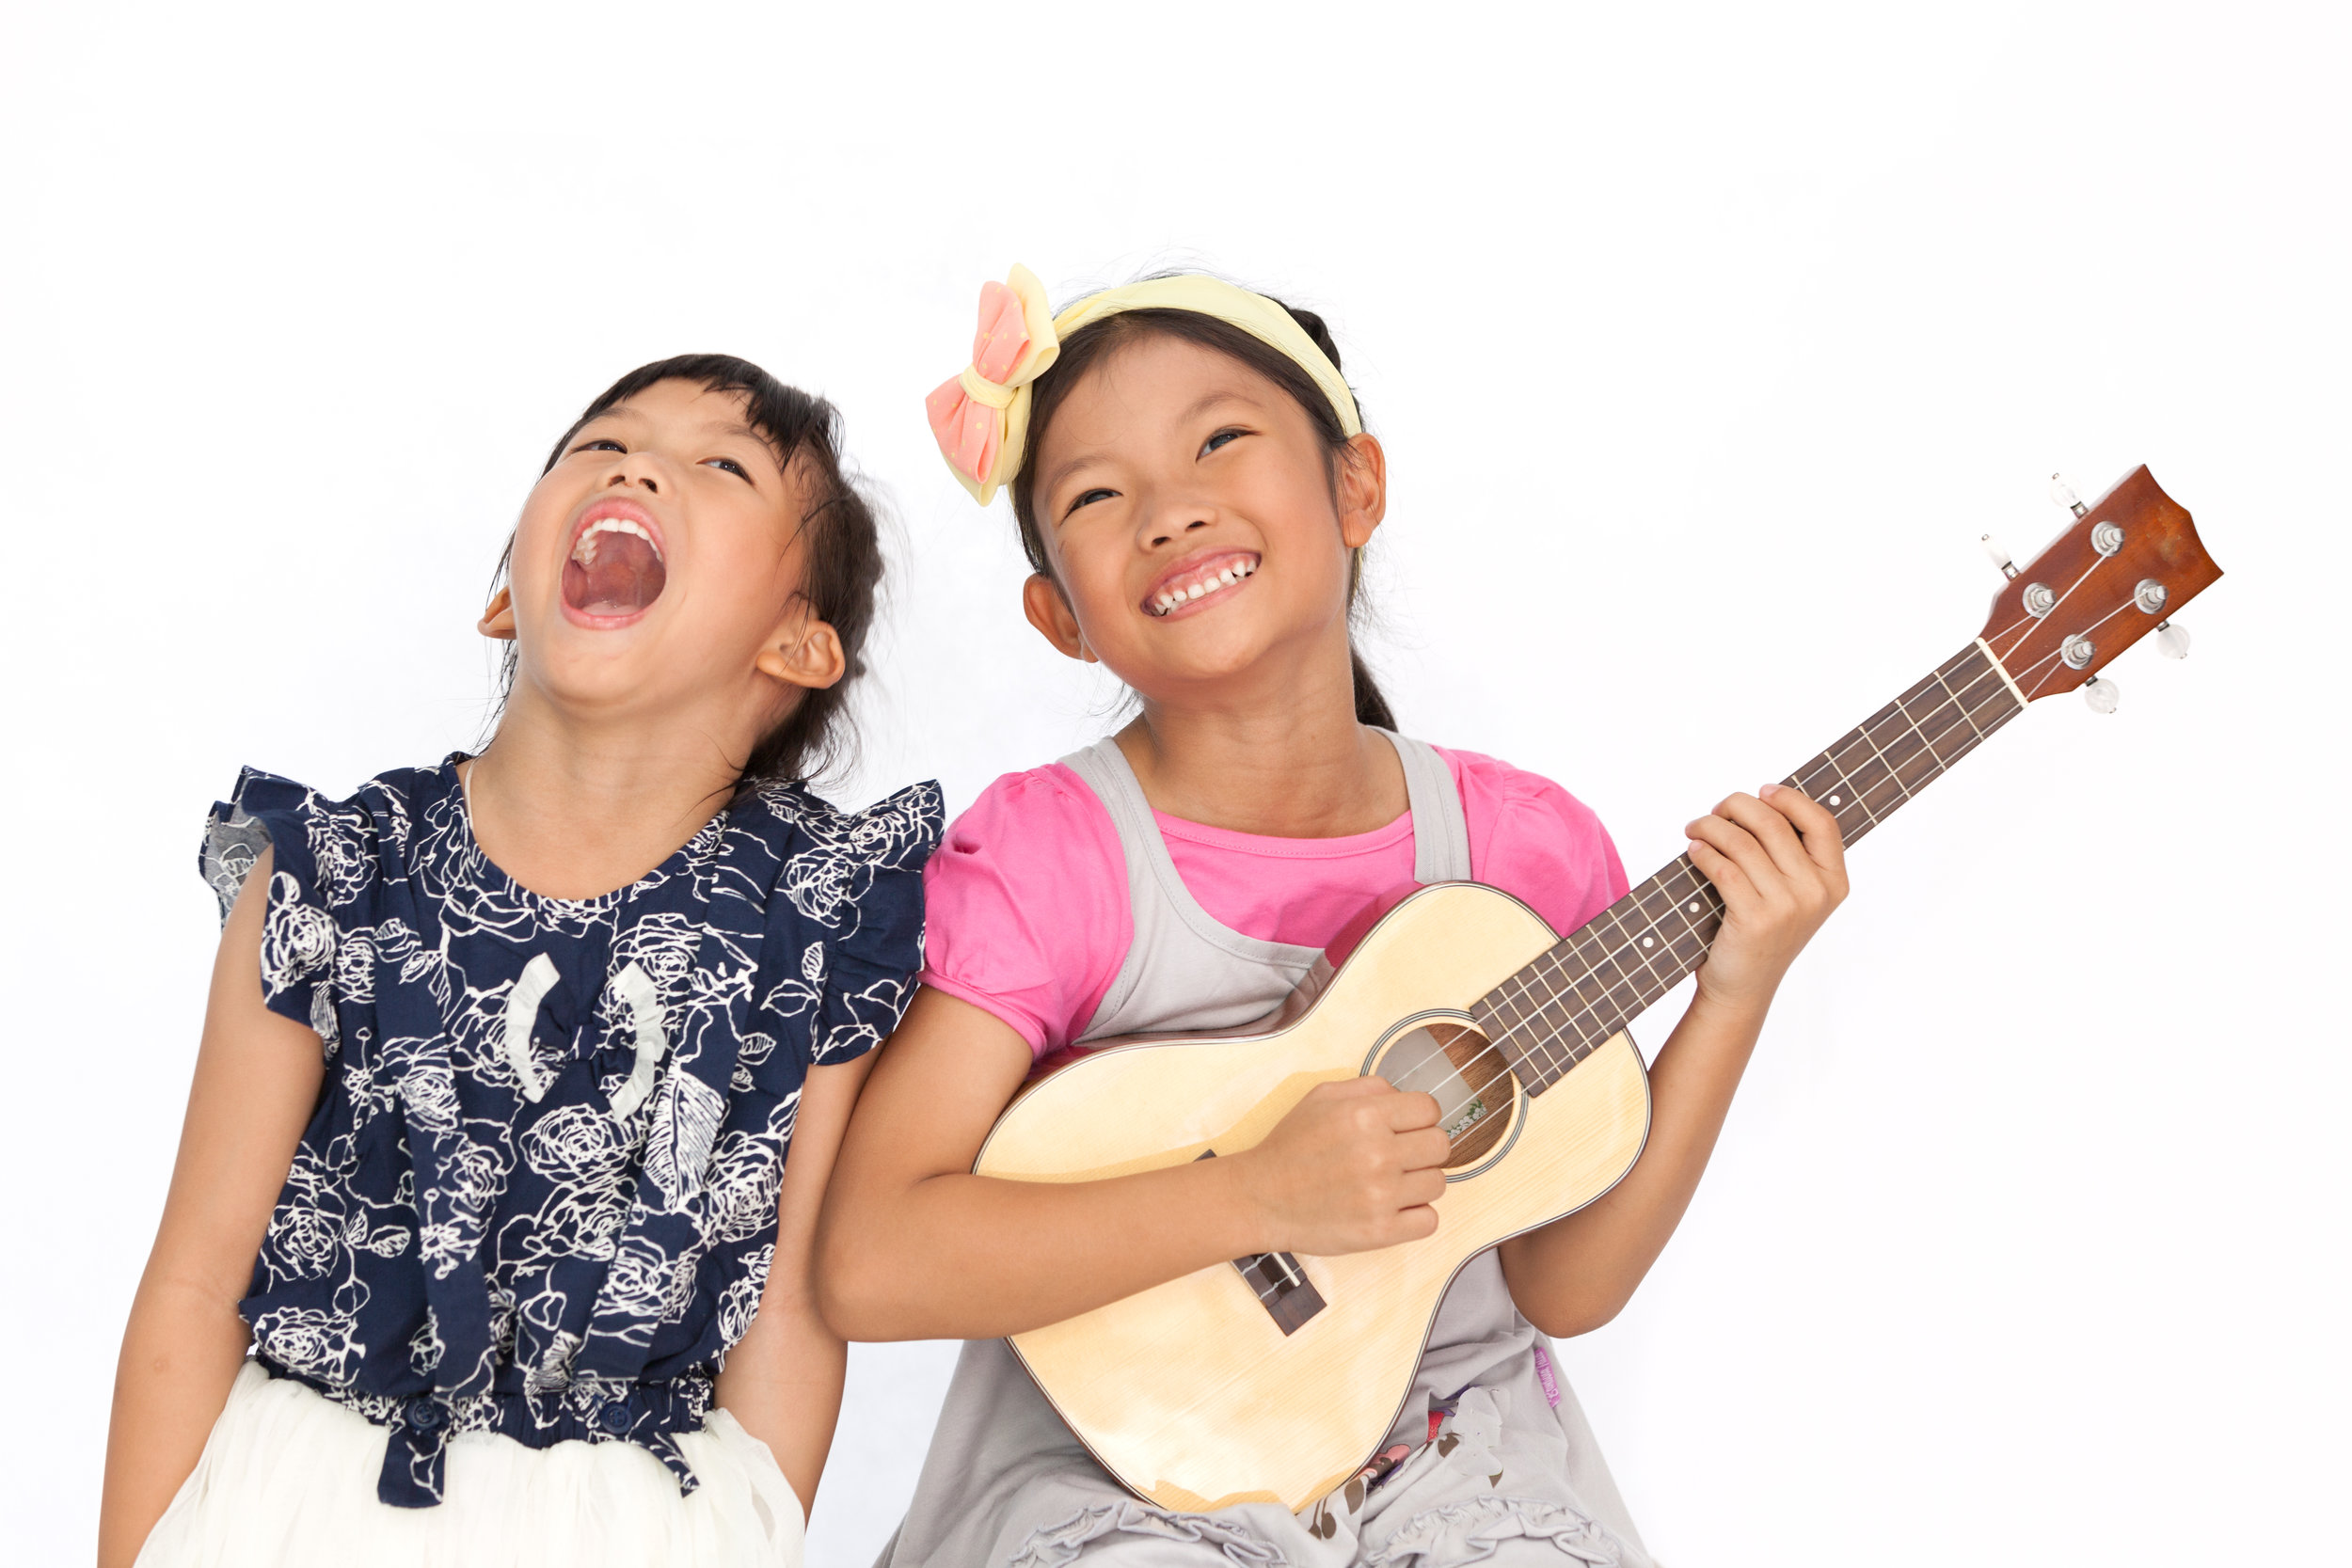 """- """"There's something about the ukulele that just makes you smile. It makes you let your guard down. It brings out the child in all of us.""""—Jake Shimabukuro, Ukulele virtuoso"""